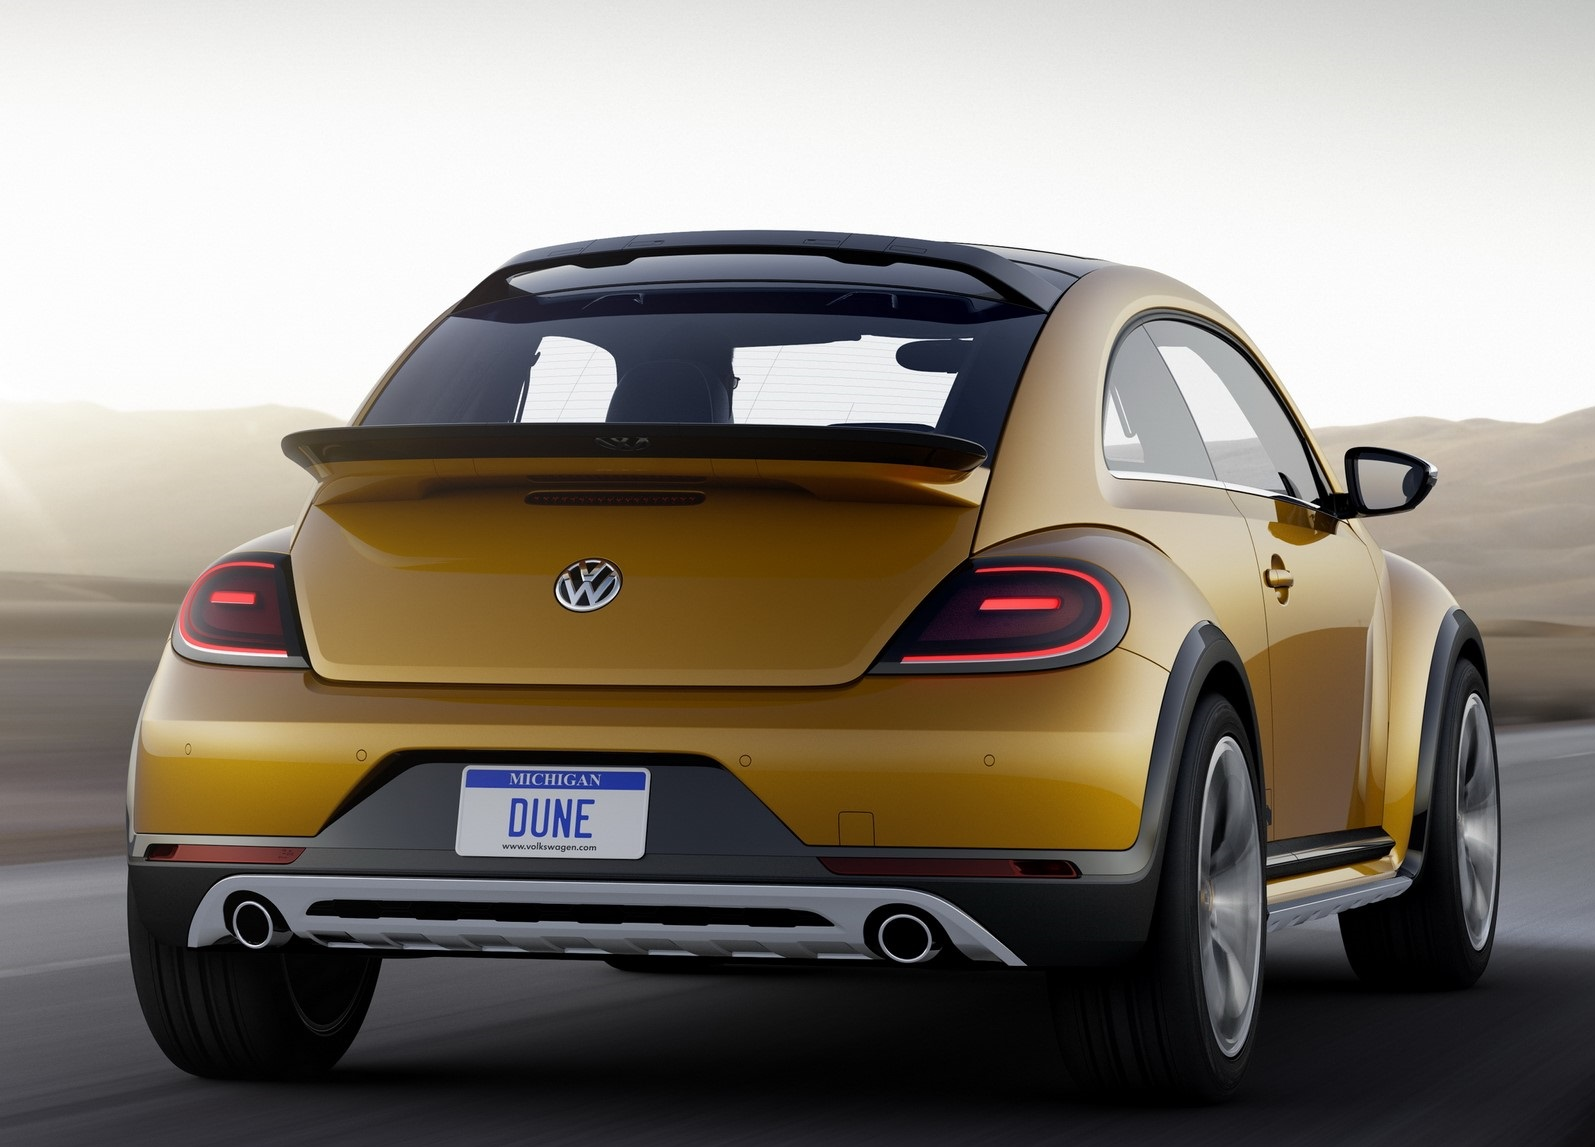 2019 Volkswagen Beetle Dune Concept photo - 6